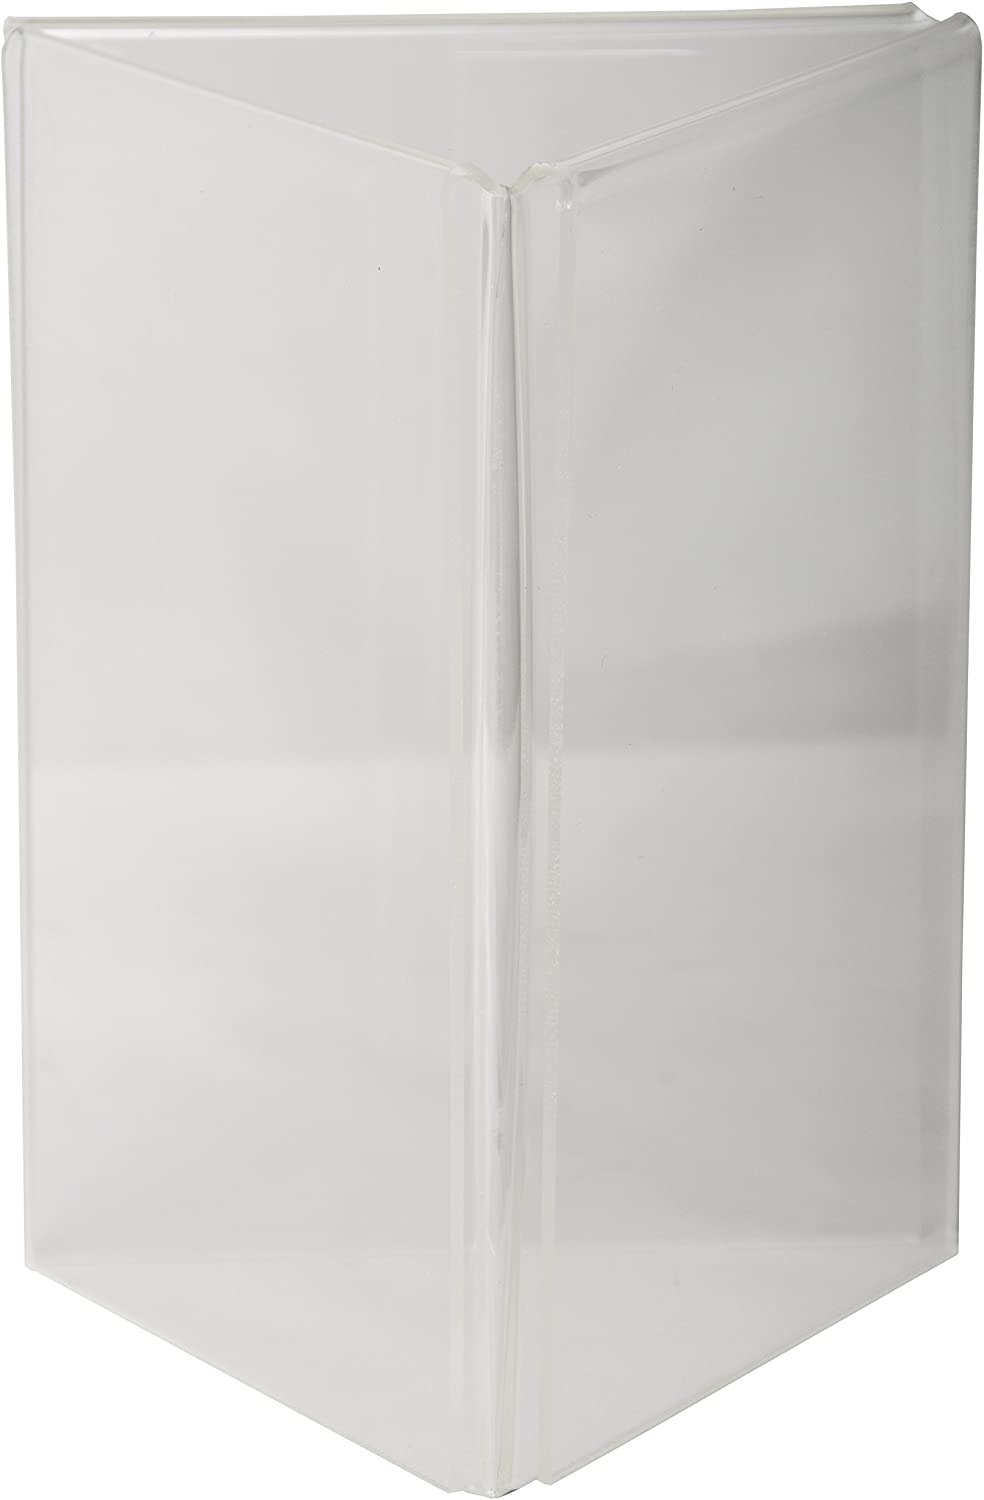 Acrylic 3-Sided Table Tent Menu Holder 4x6 Clear-Ad LHE-46 Pack of 4